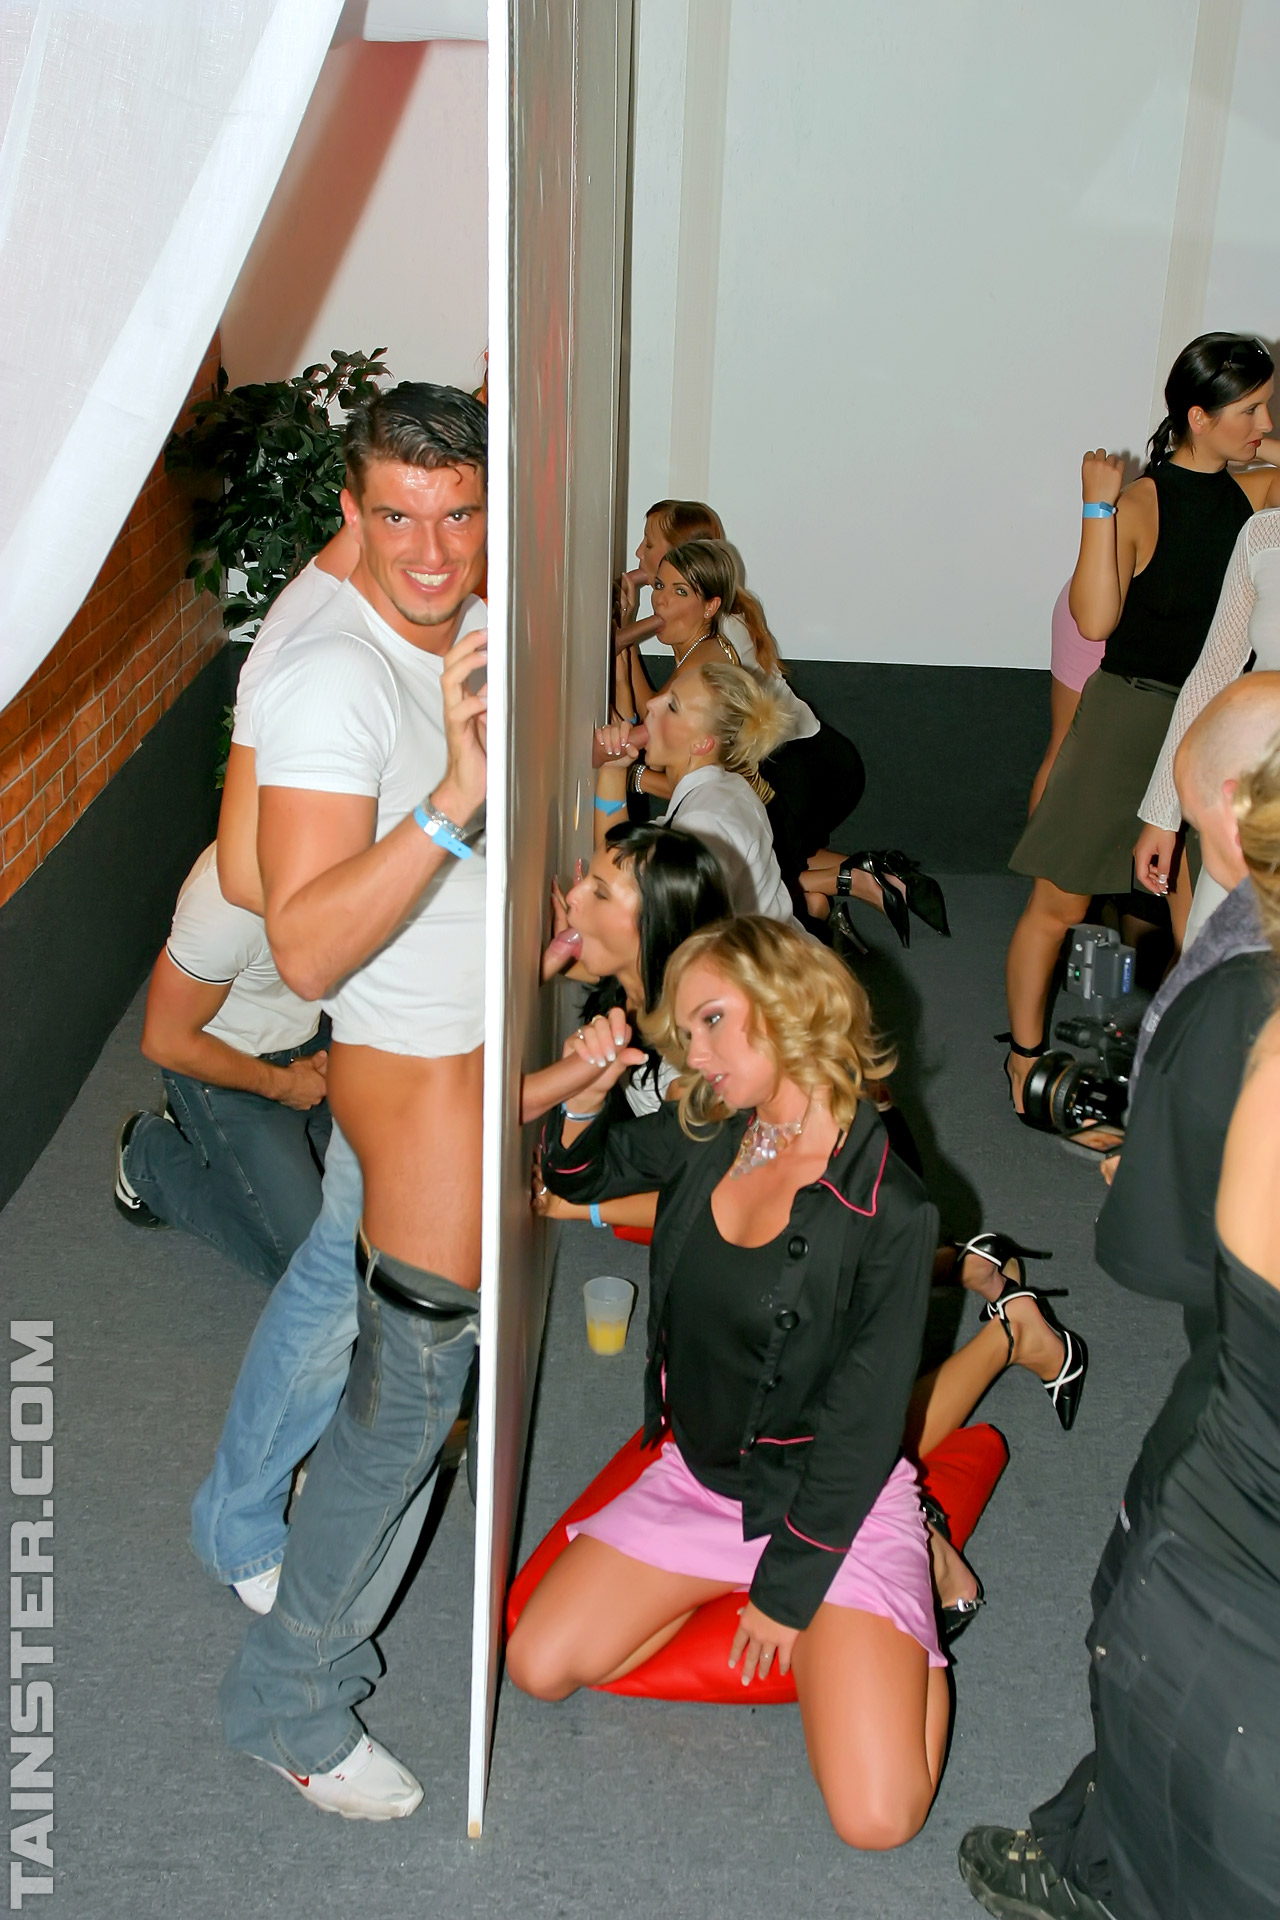 crossdressers glory holes and orgies - naked images